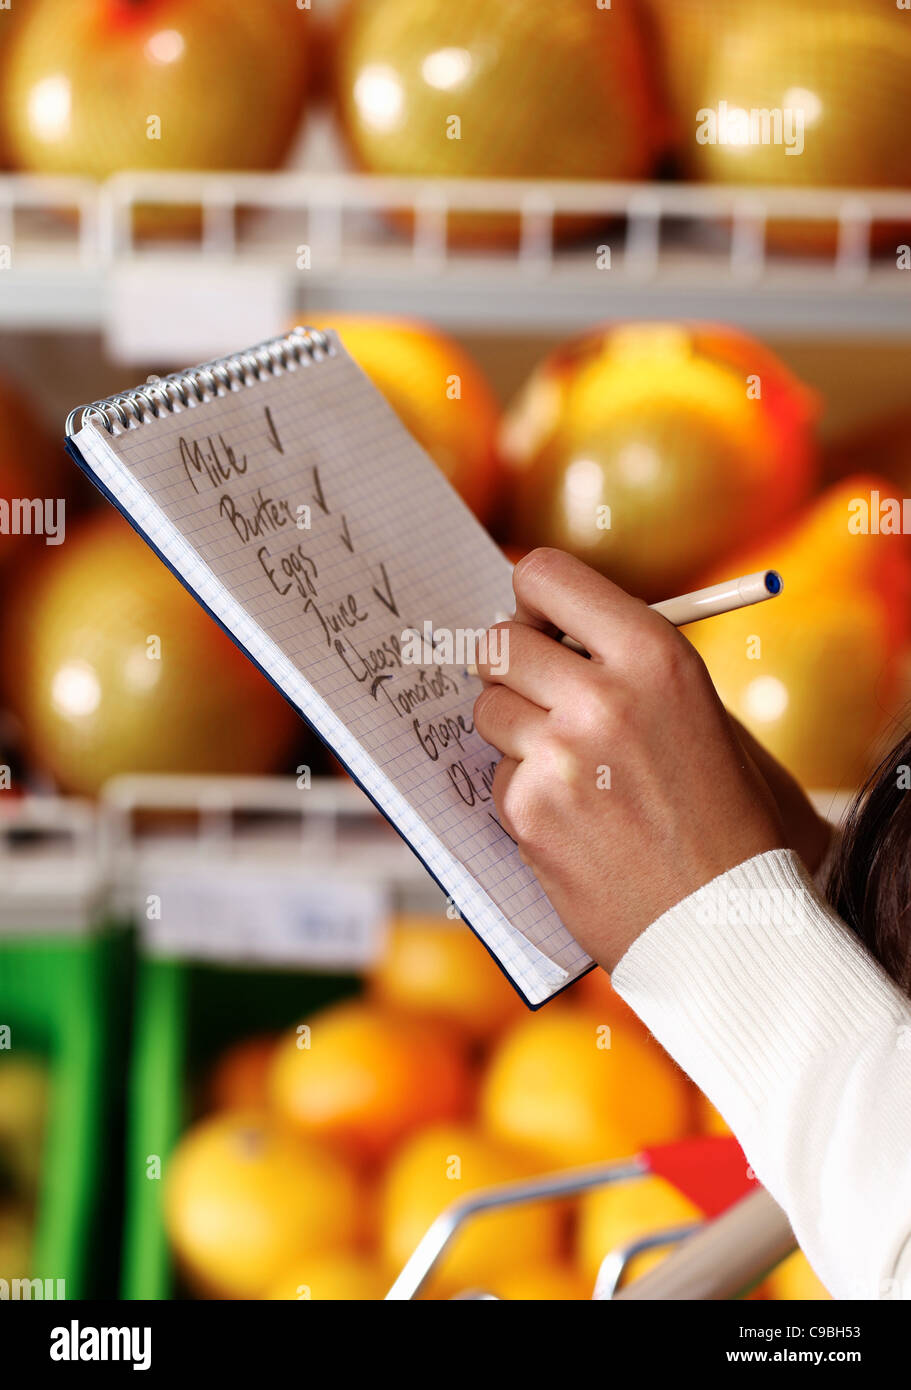 Image of female hands with pen holding product list while buying goods in supermarket - Stock Image